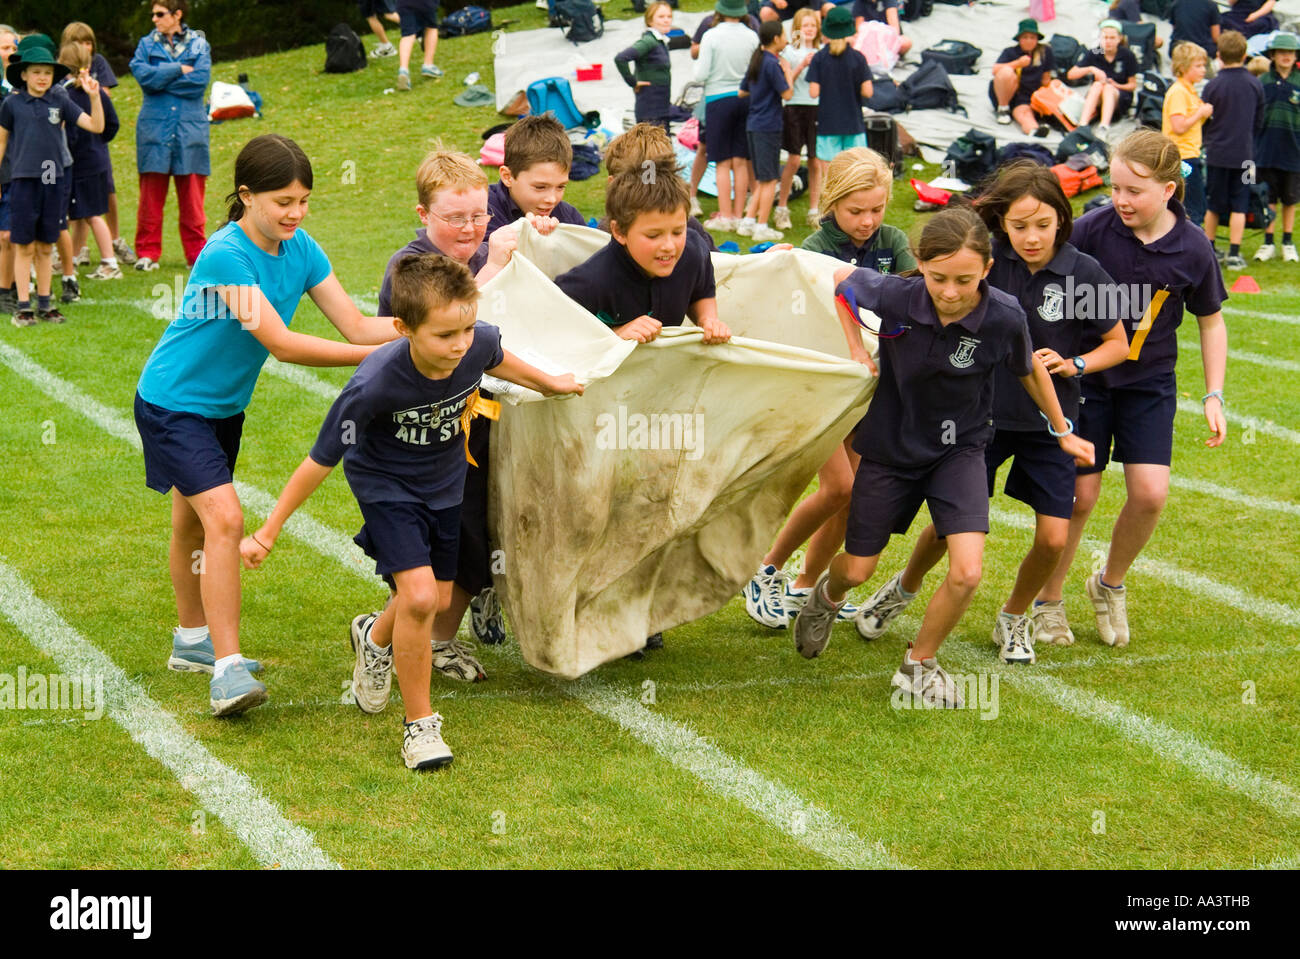 Children running in a sack relay race at primary school sports day in Hobart Tasmania Australia - Stock Image